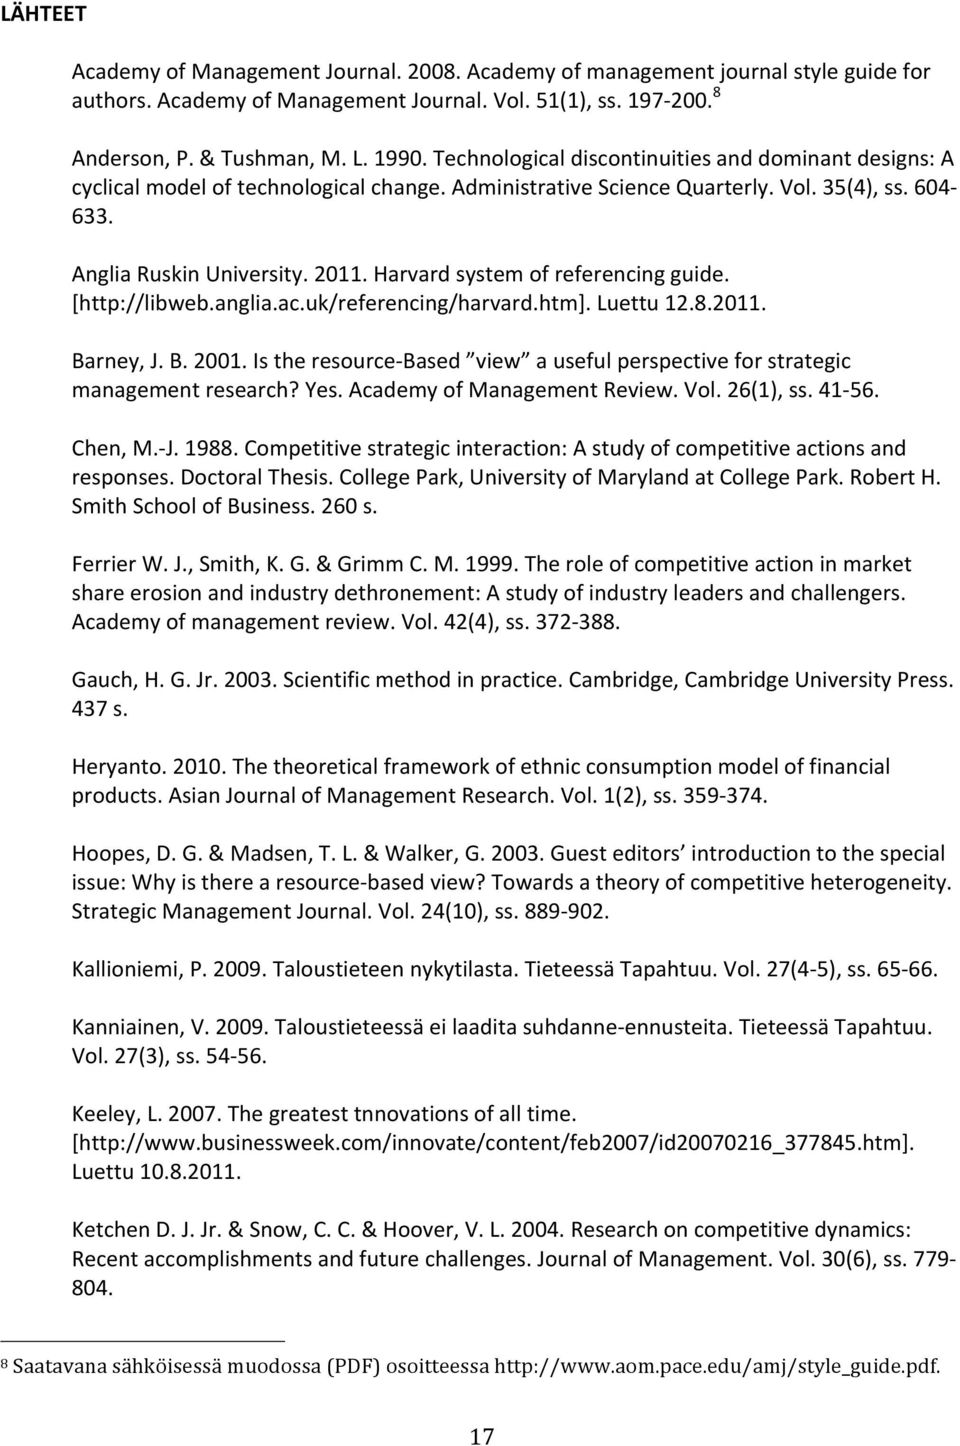 [http://libweb.anglia.ac.uk/referencing/harvard.htm].luettu12.8.2011. Barney,J.B.2001.Istheresource8Based view ausefulperspectiveforstrategic managementresearch?yes.academyofmanagementreview.vol.